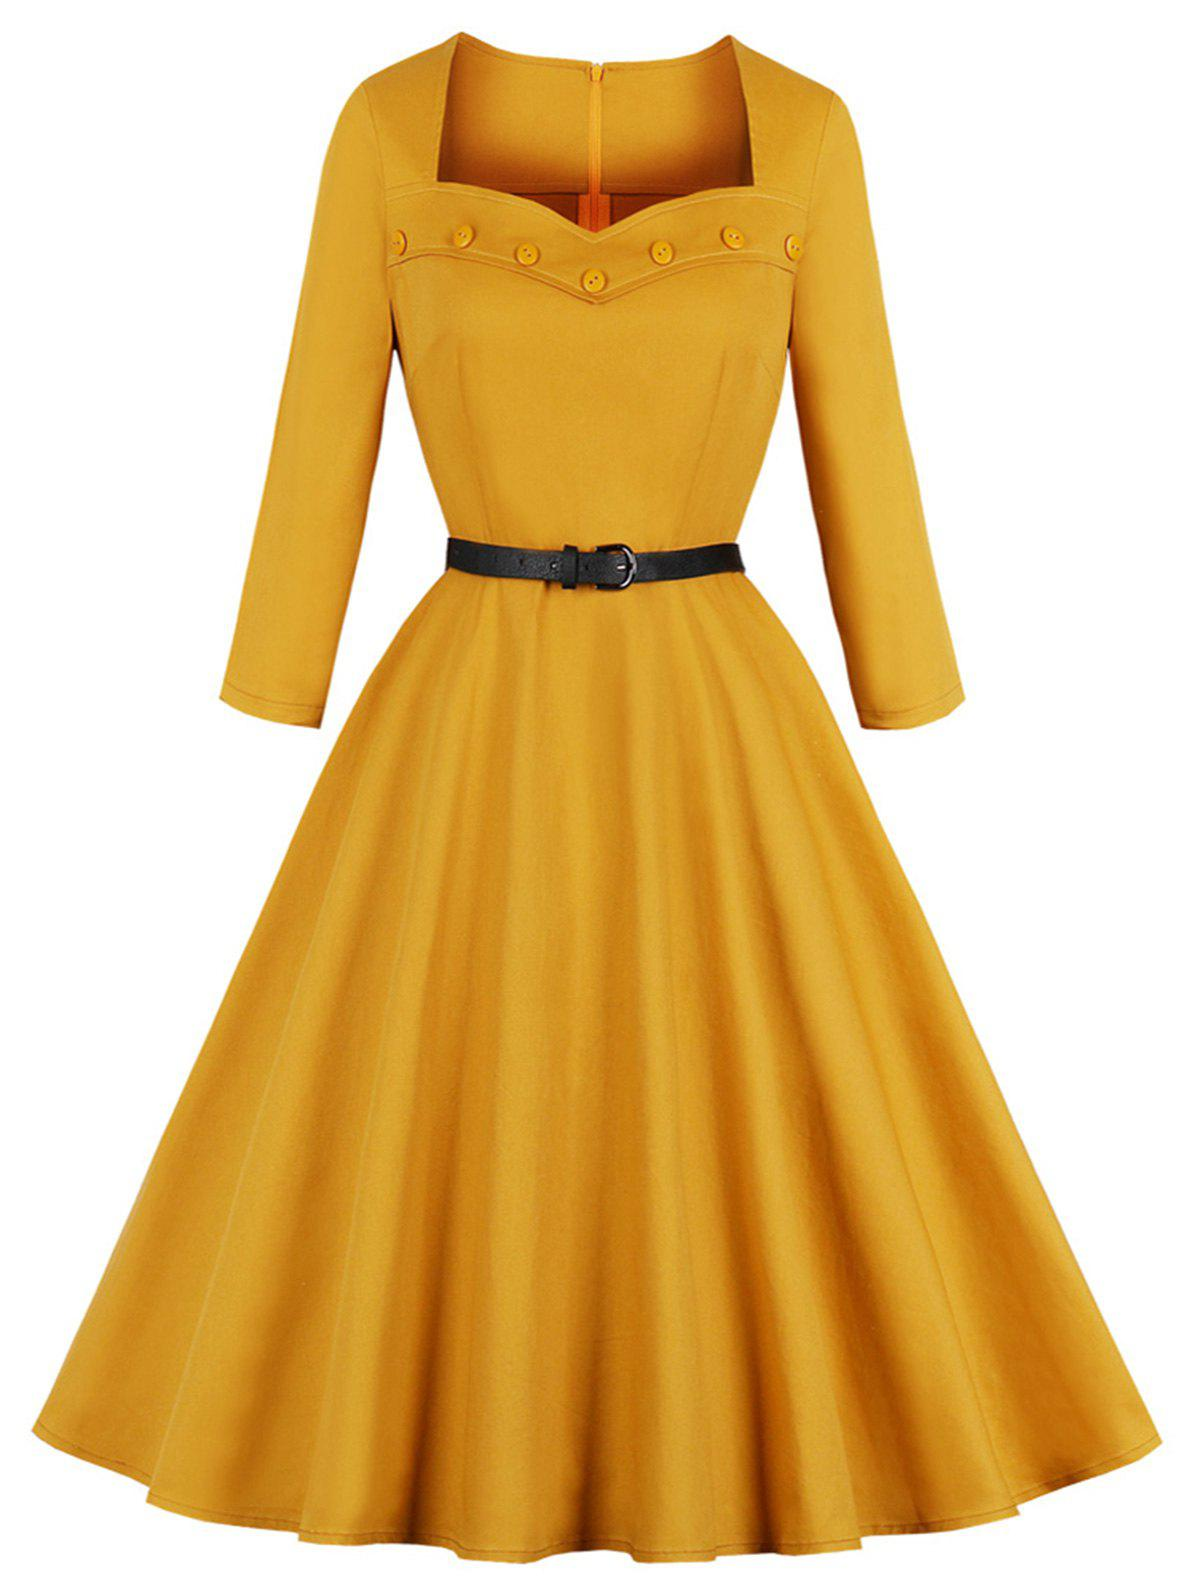 Sweetheart Neck Vintage Pin Up Dress - GOLDEN BROWN S